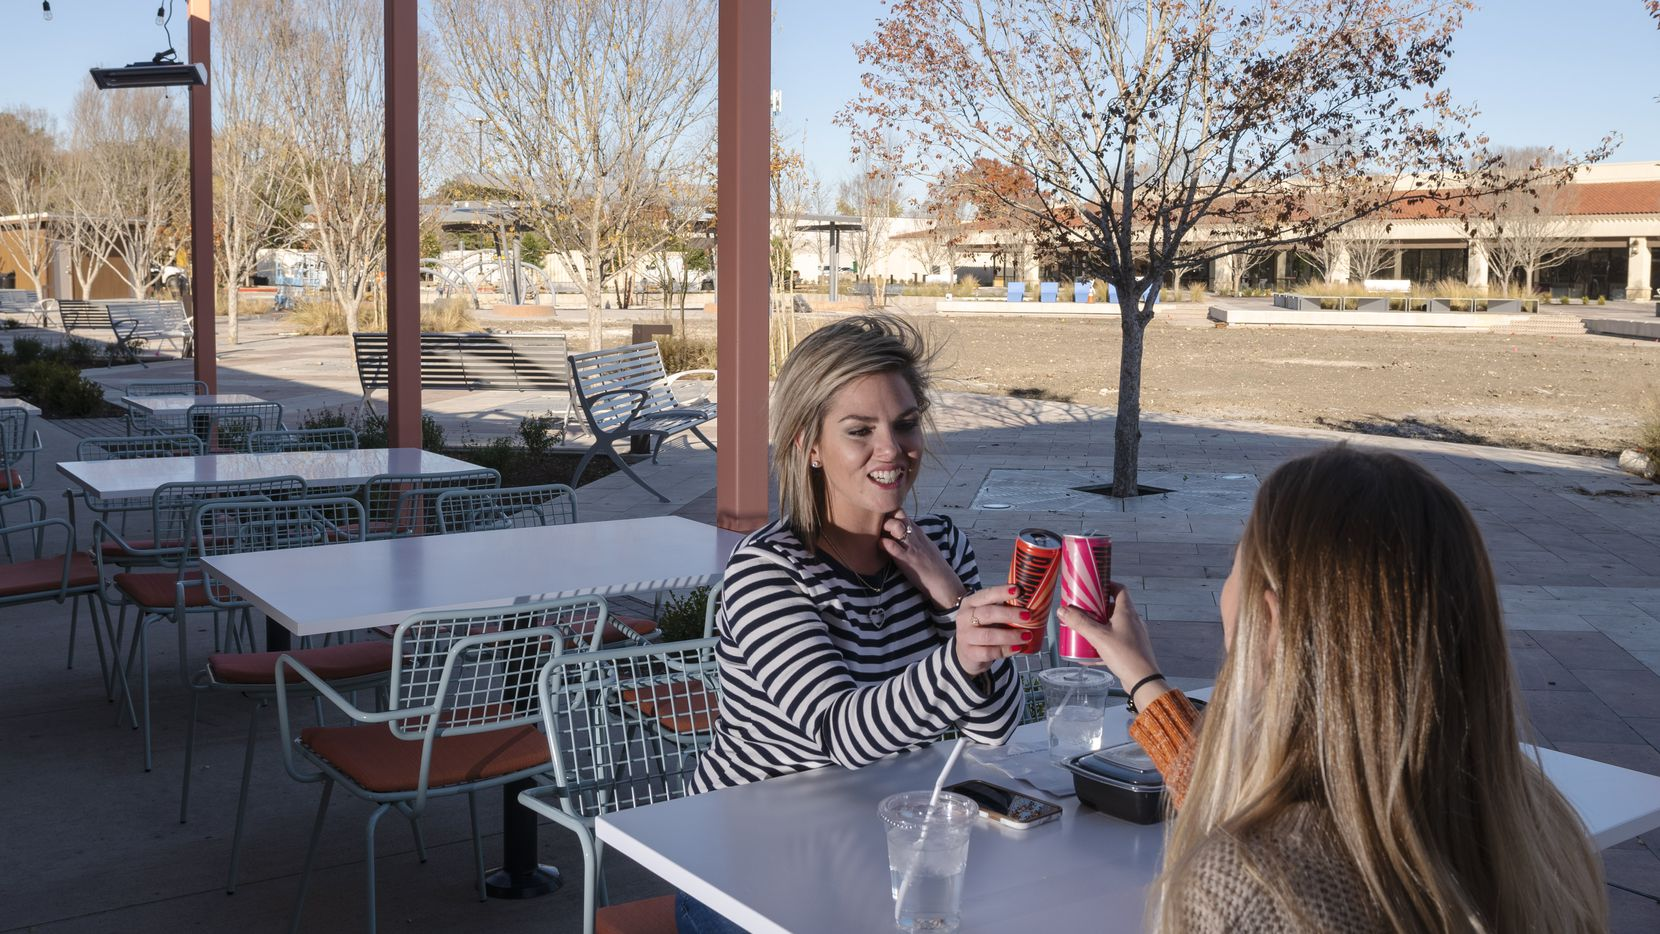 Shelby Presser, left, and Terri Hankins enjoy a pair of beverages after having lunch at Lada, the only open restaurant — so far — facing the park at Hillcrest Village in Far North Dallas. In 2021, the area behind the tree will become a 1.5-acre green space with a half-dozen restaurants with patios.